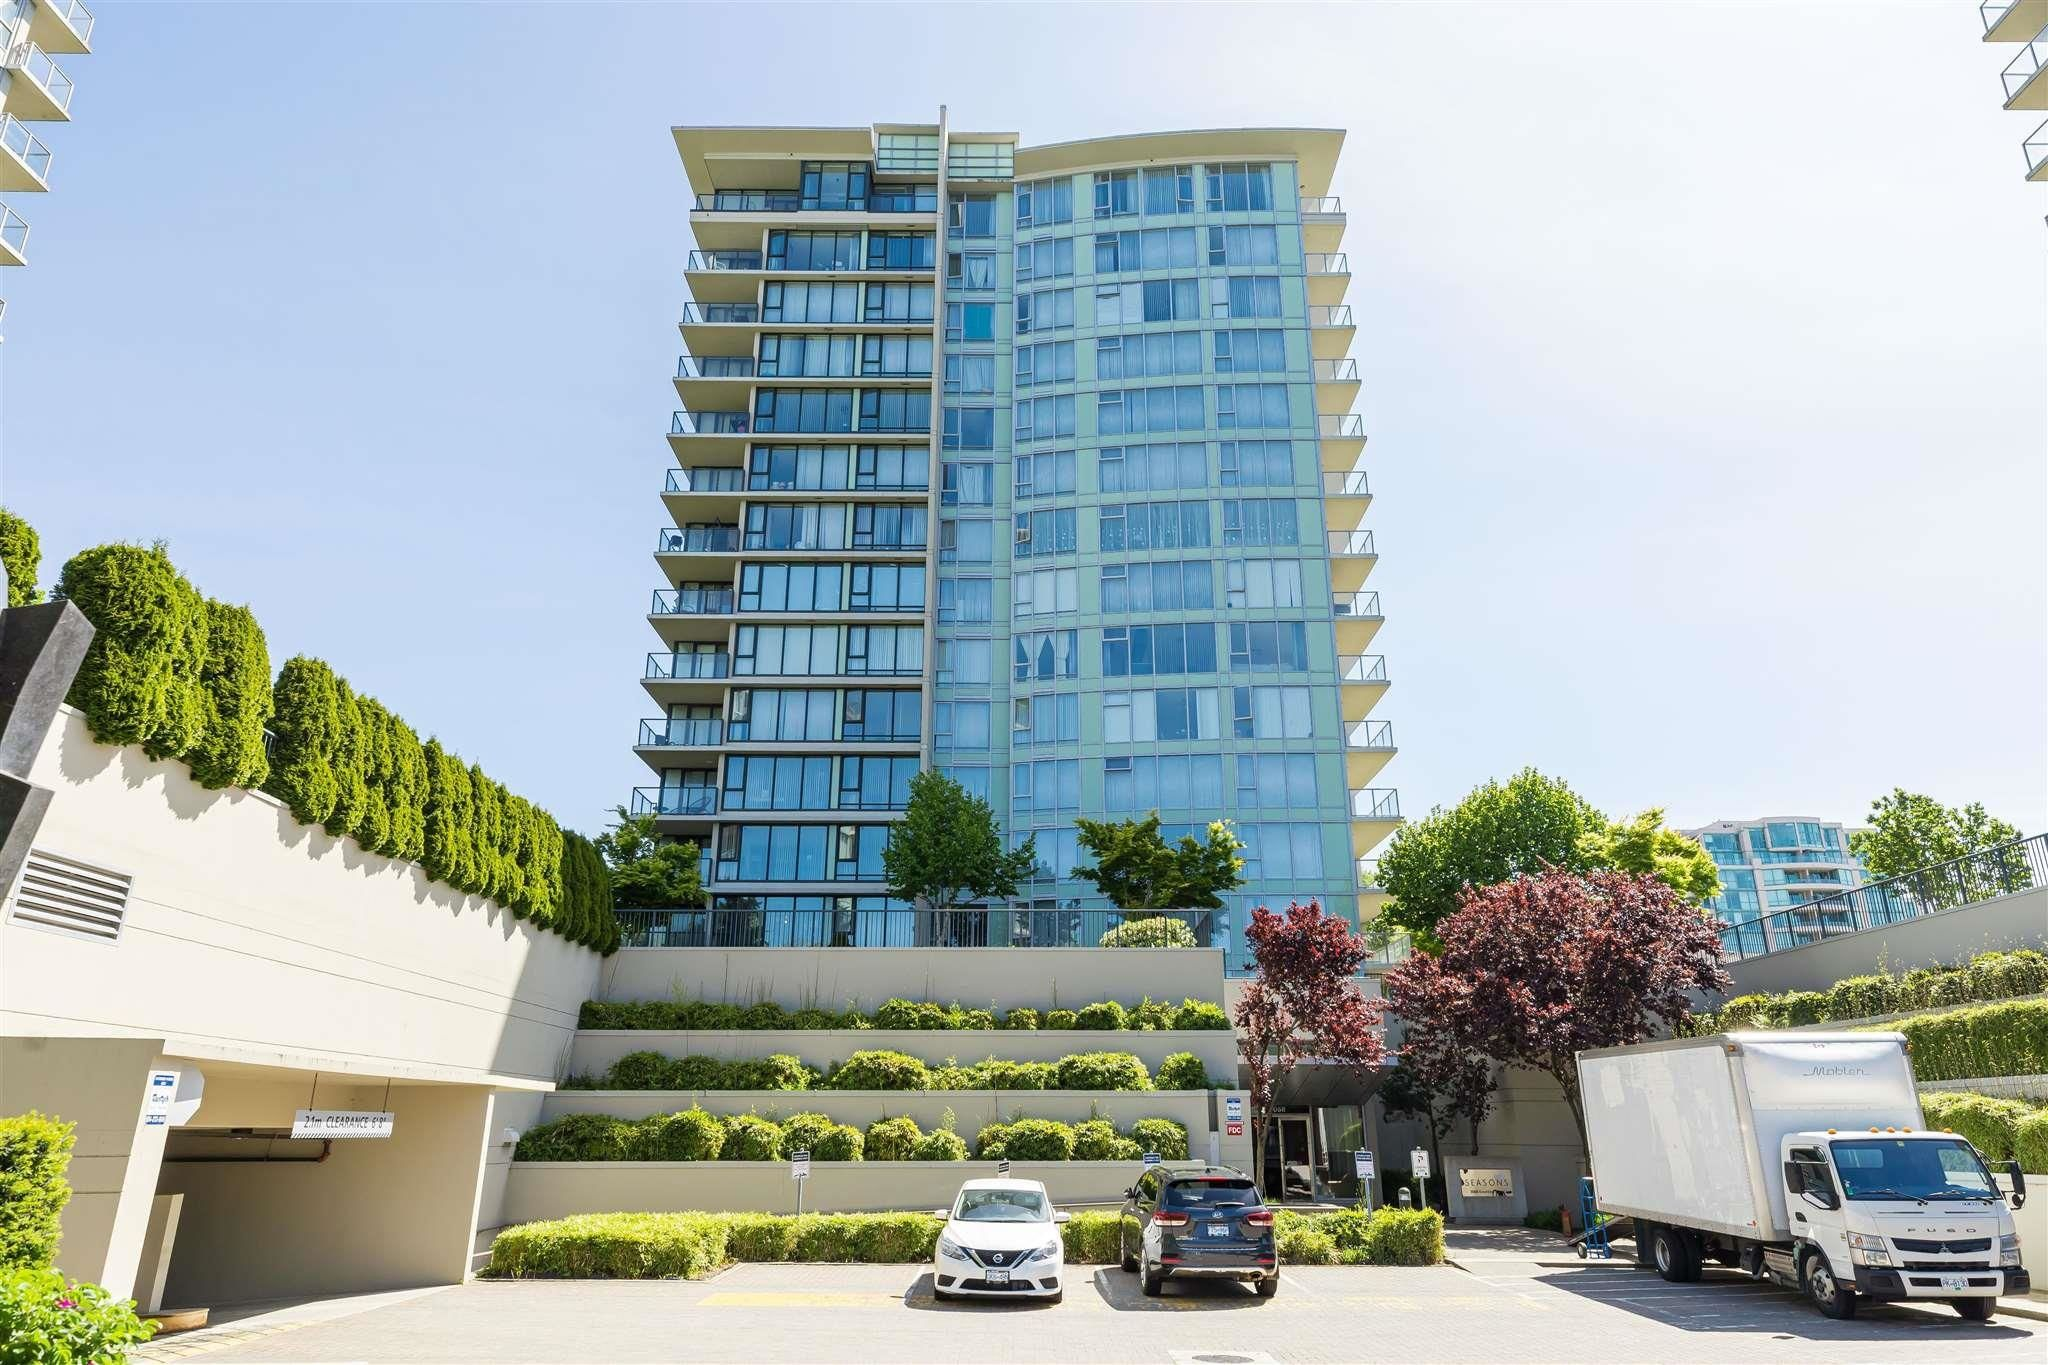 Main Photo: 705 5068 KWANTLEN Street in Richmond: Brighouse Condo for sale : MLS®# R2617728